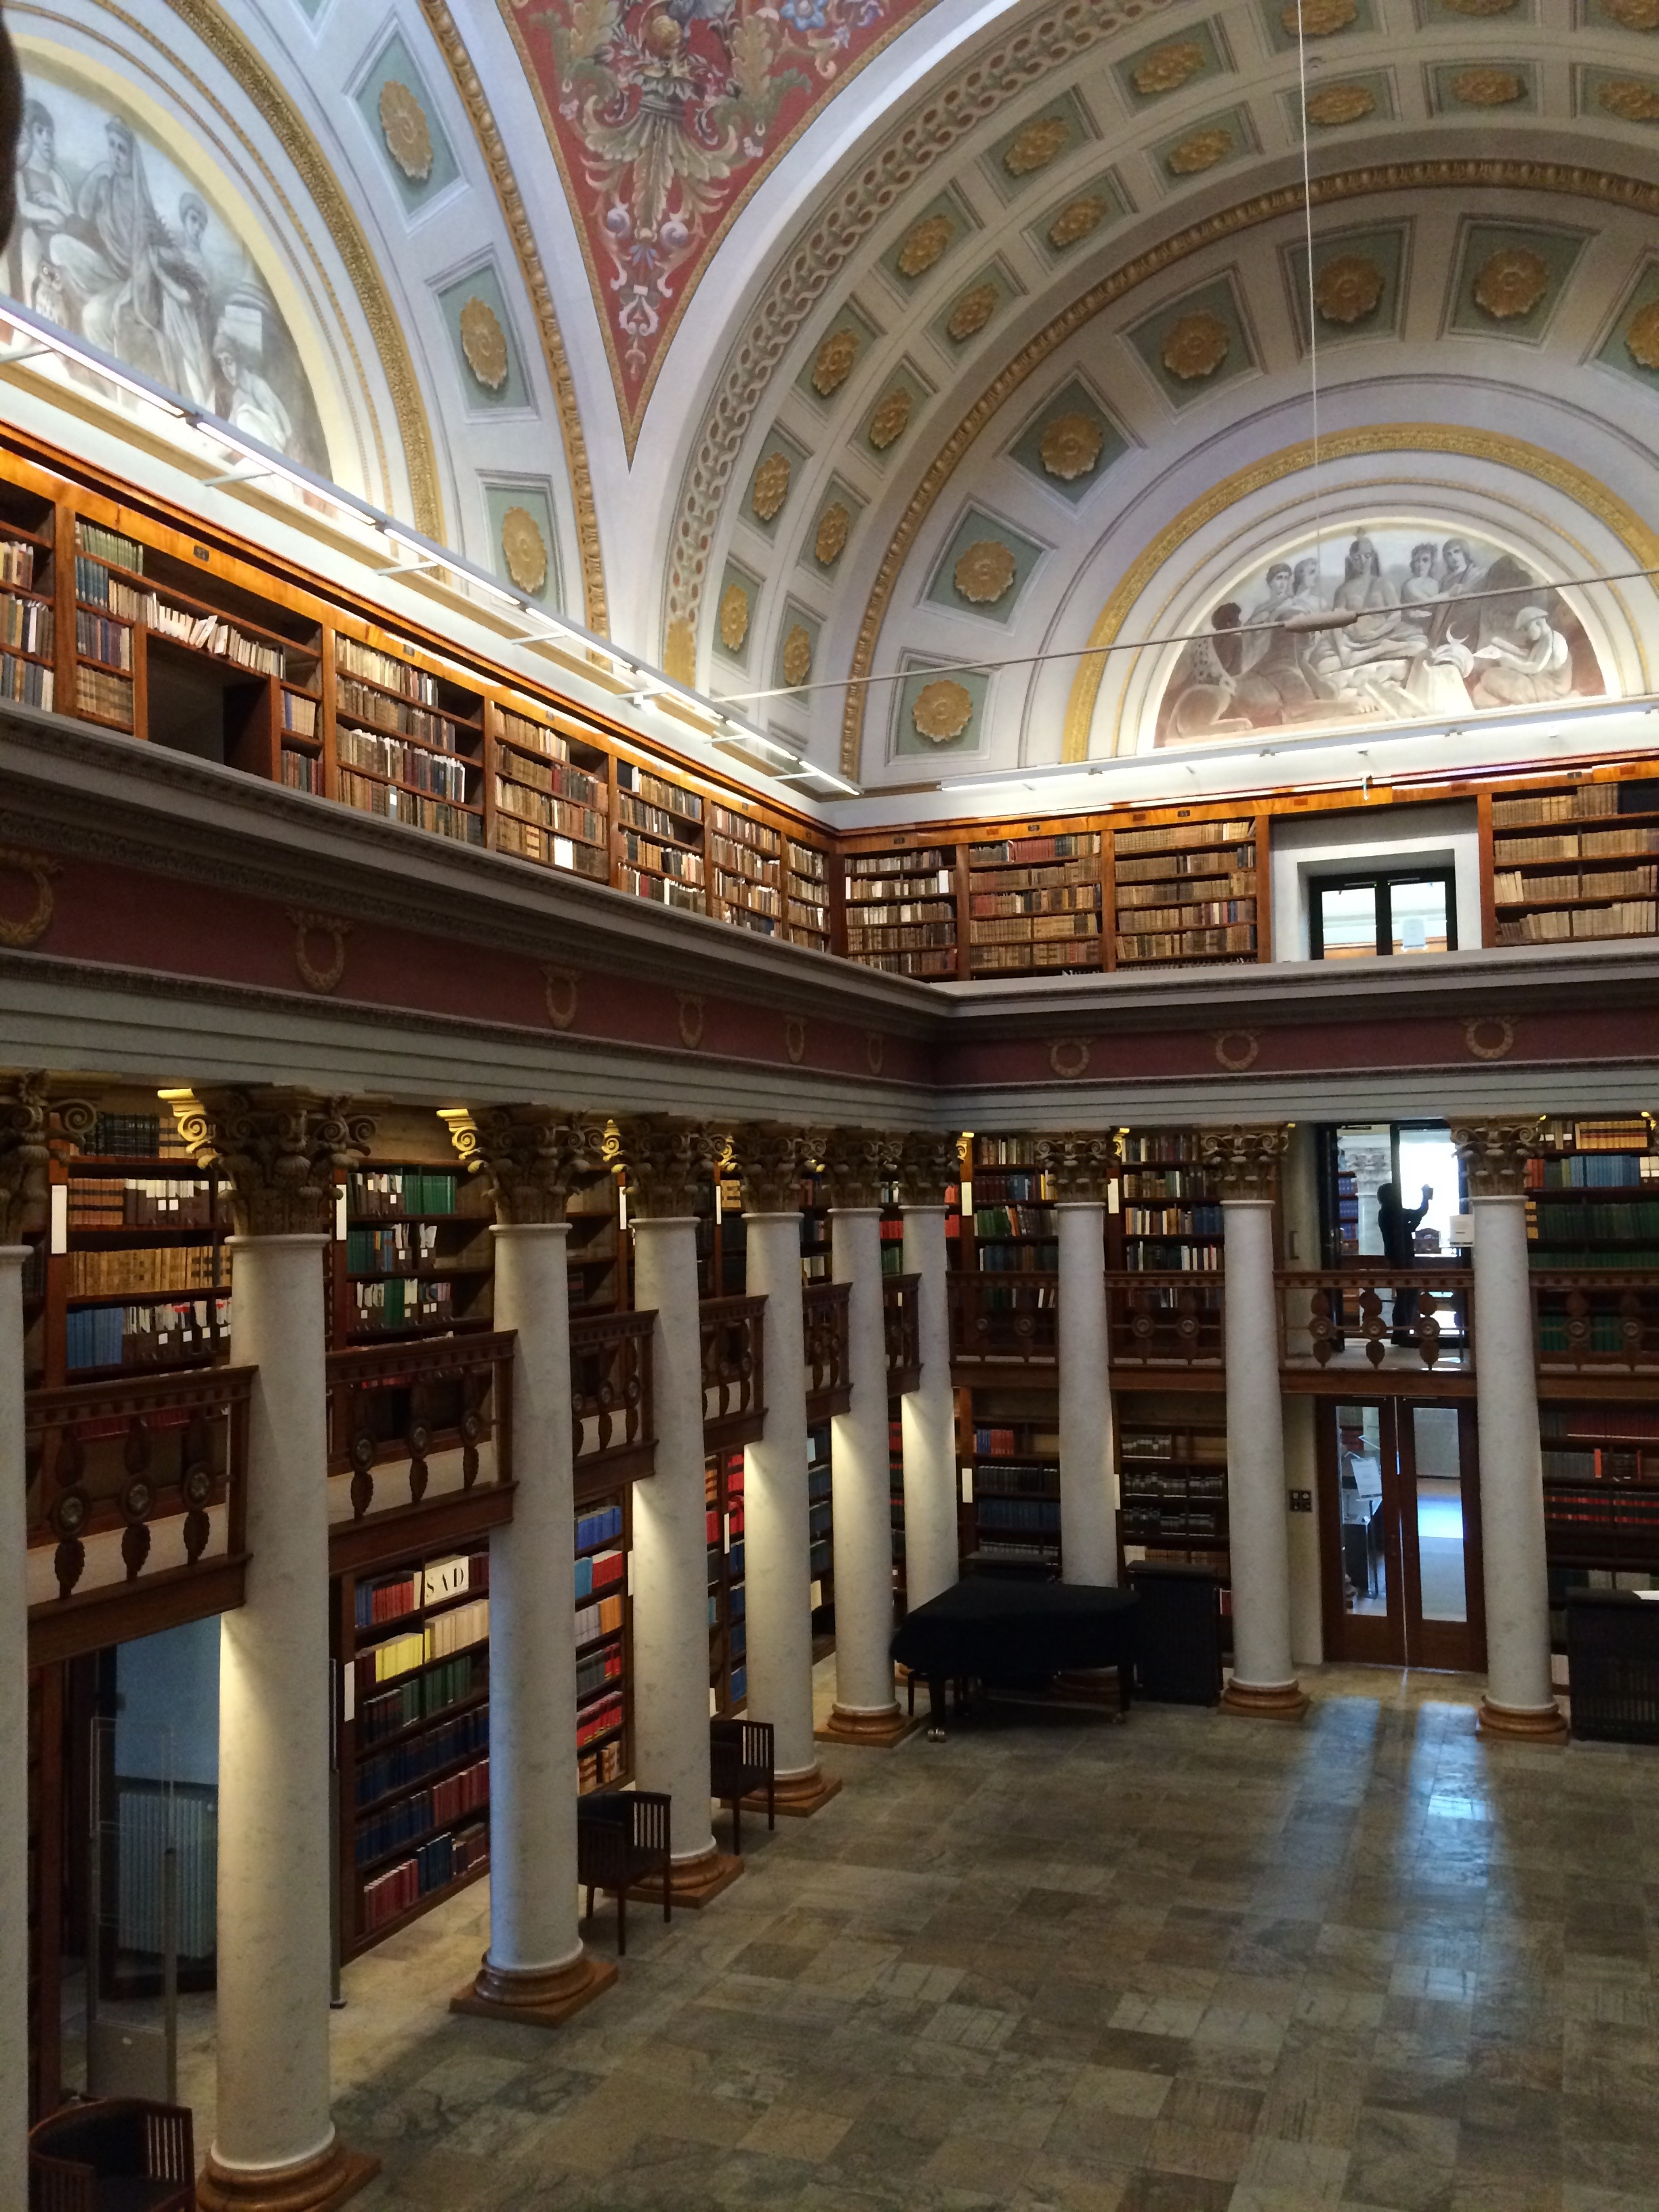 Helsinki Sightseeing trip National library of Finland